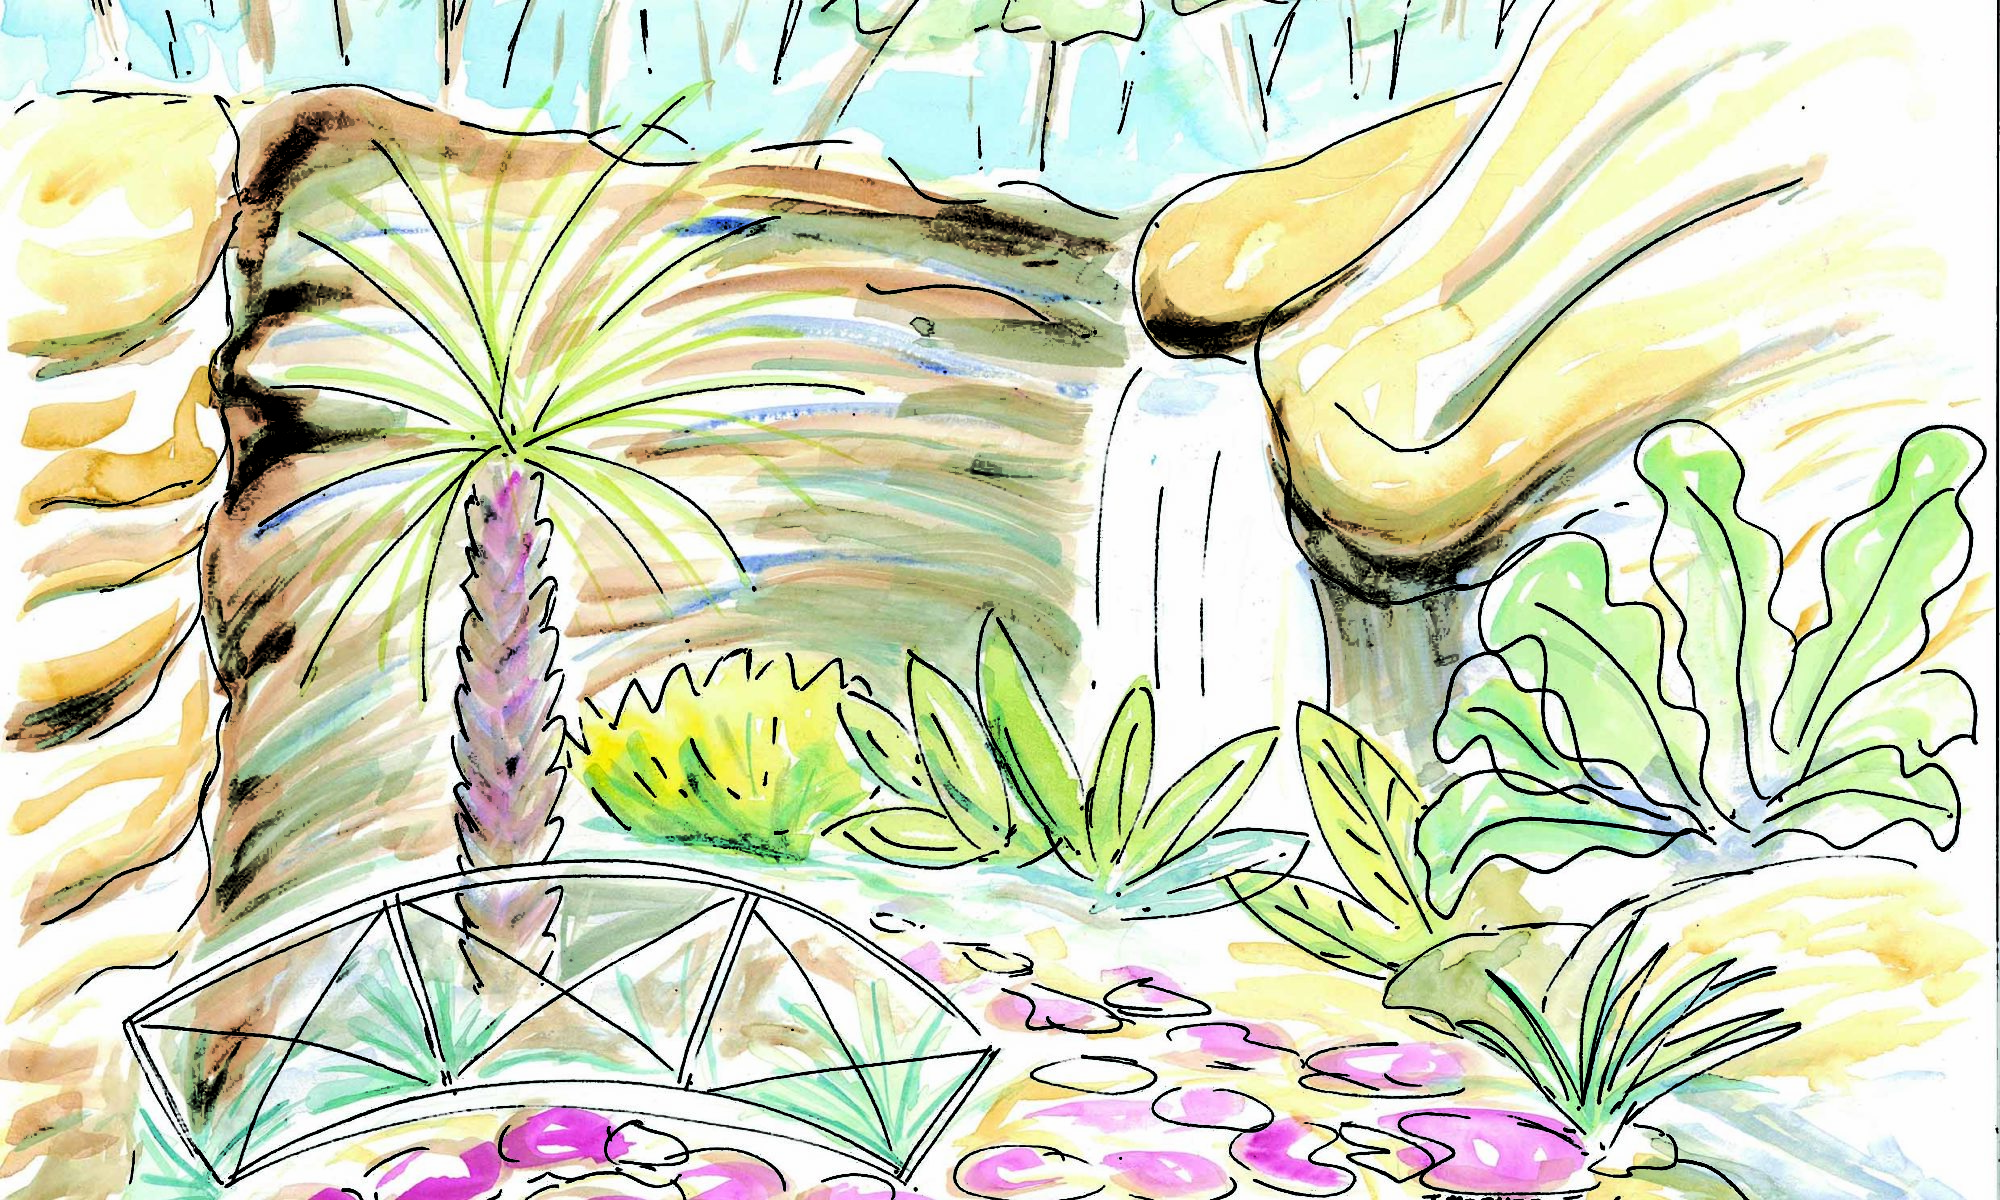 The Grotto, Everglades - watercolour (c) Jennifer Mosher